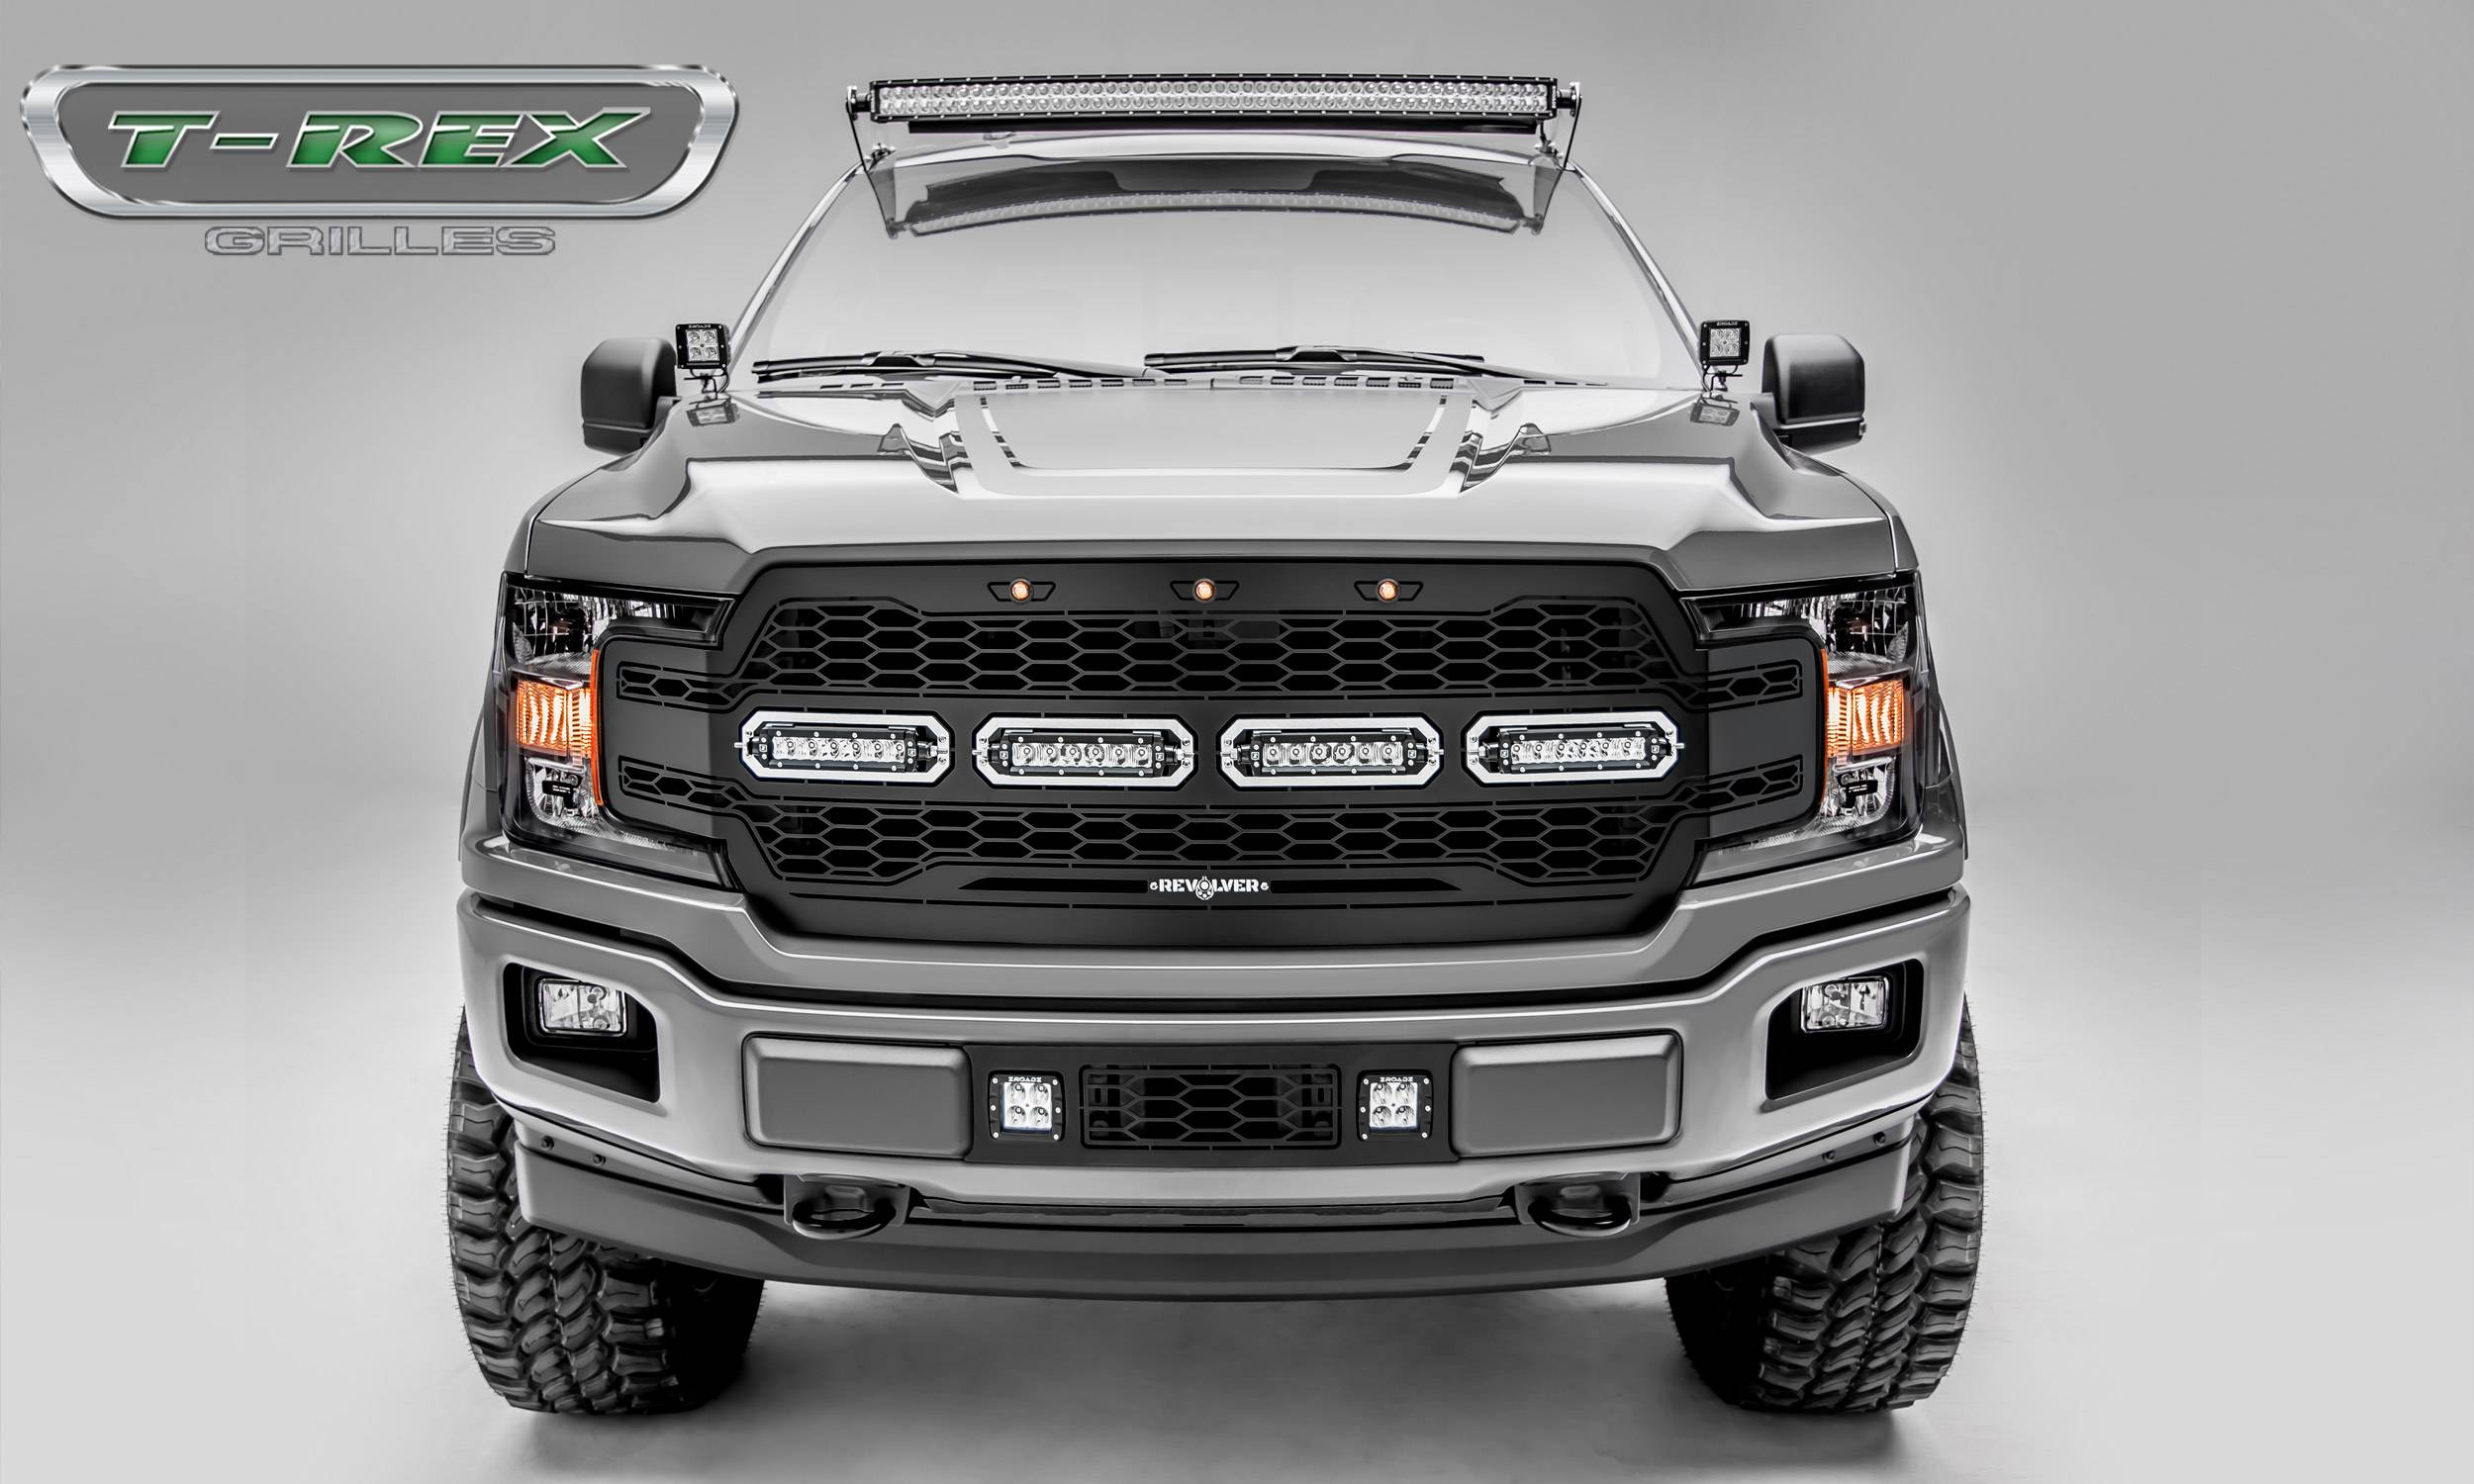 "T-REX Grilles - T-REX Ford F-150 - Revolver Series - Main Grille Replacement w/ (4) 6"" LED Light Bars - Laser Cut Steel Pattern - Pt # 6515841"